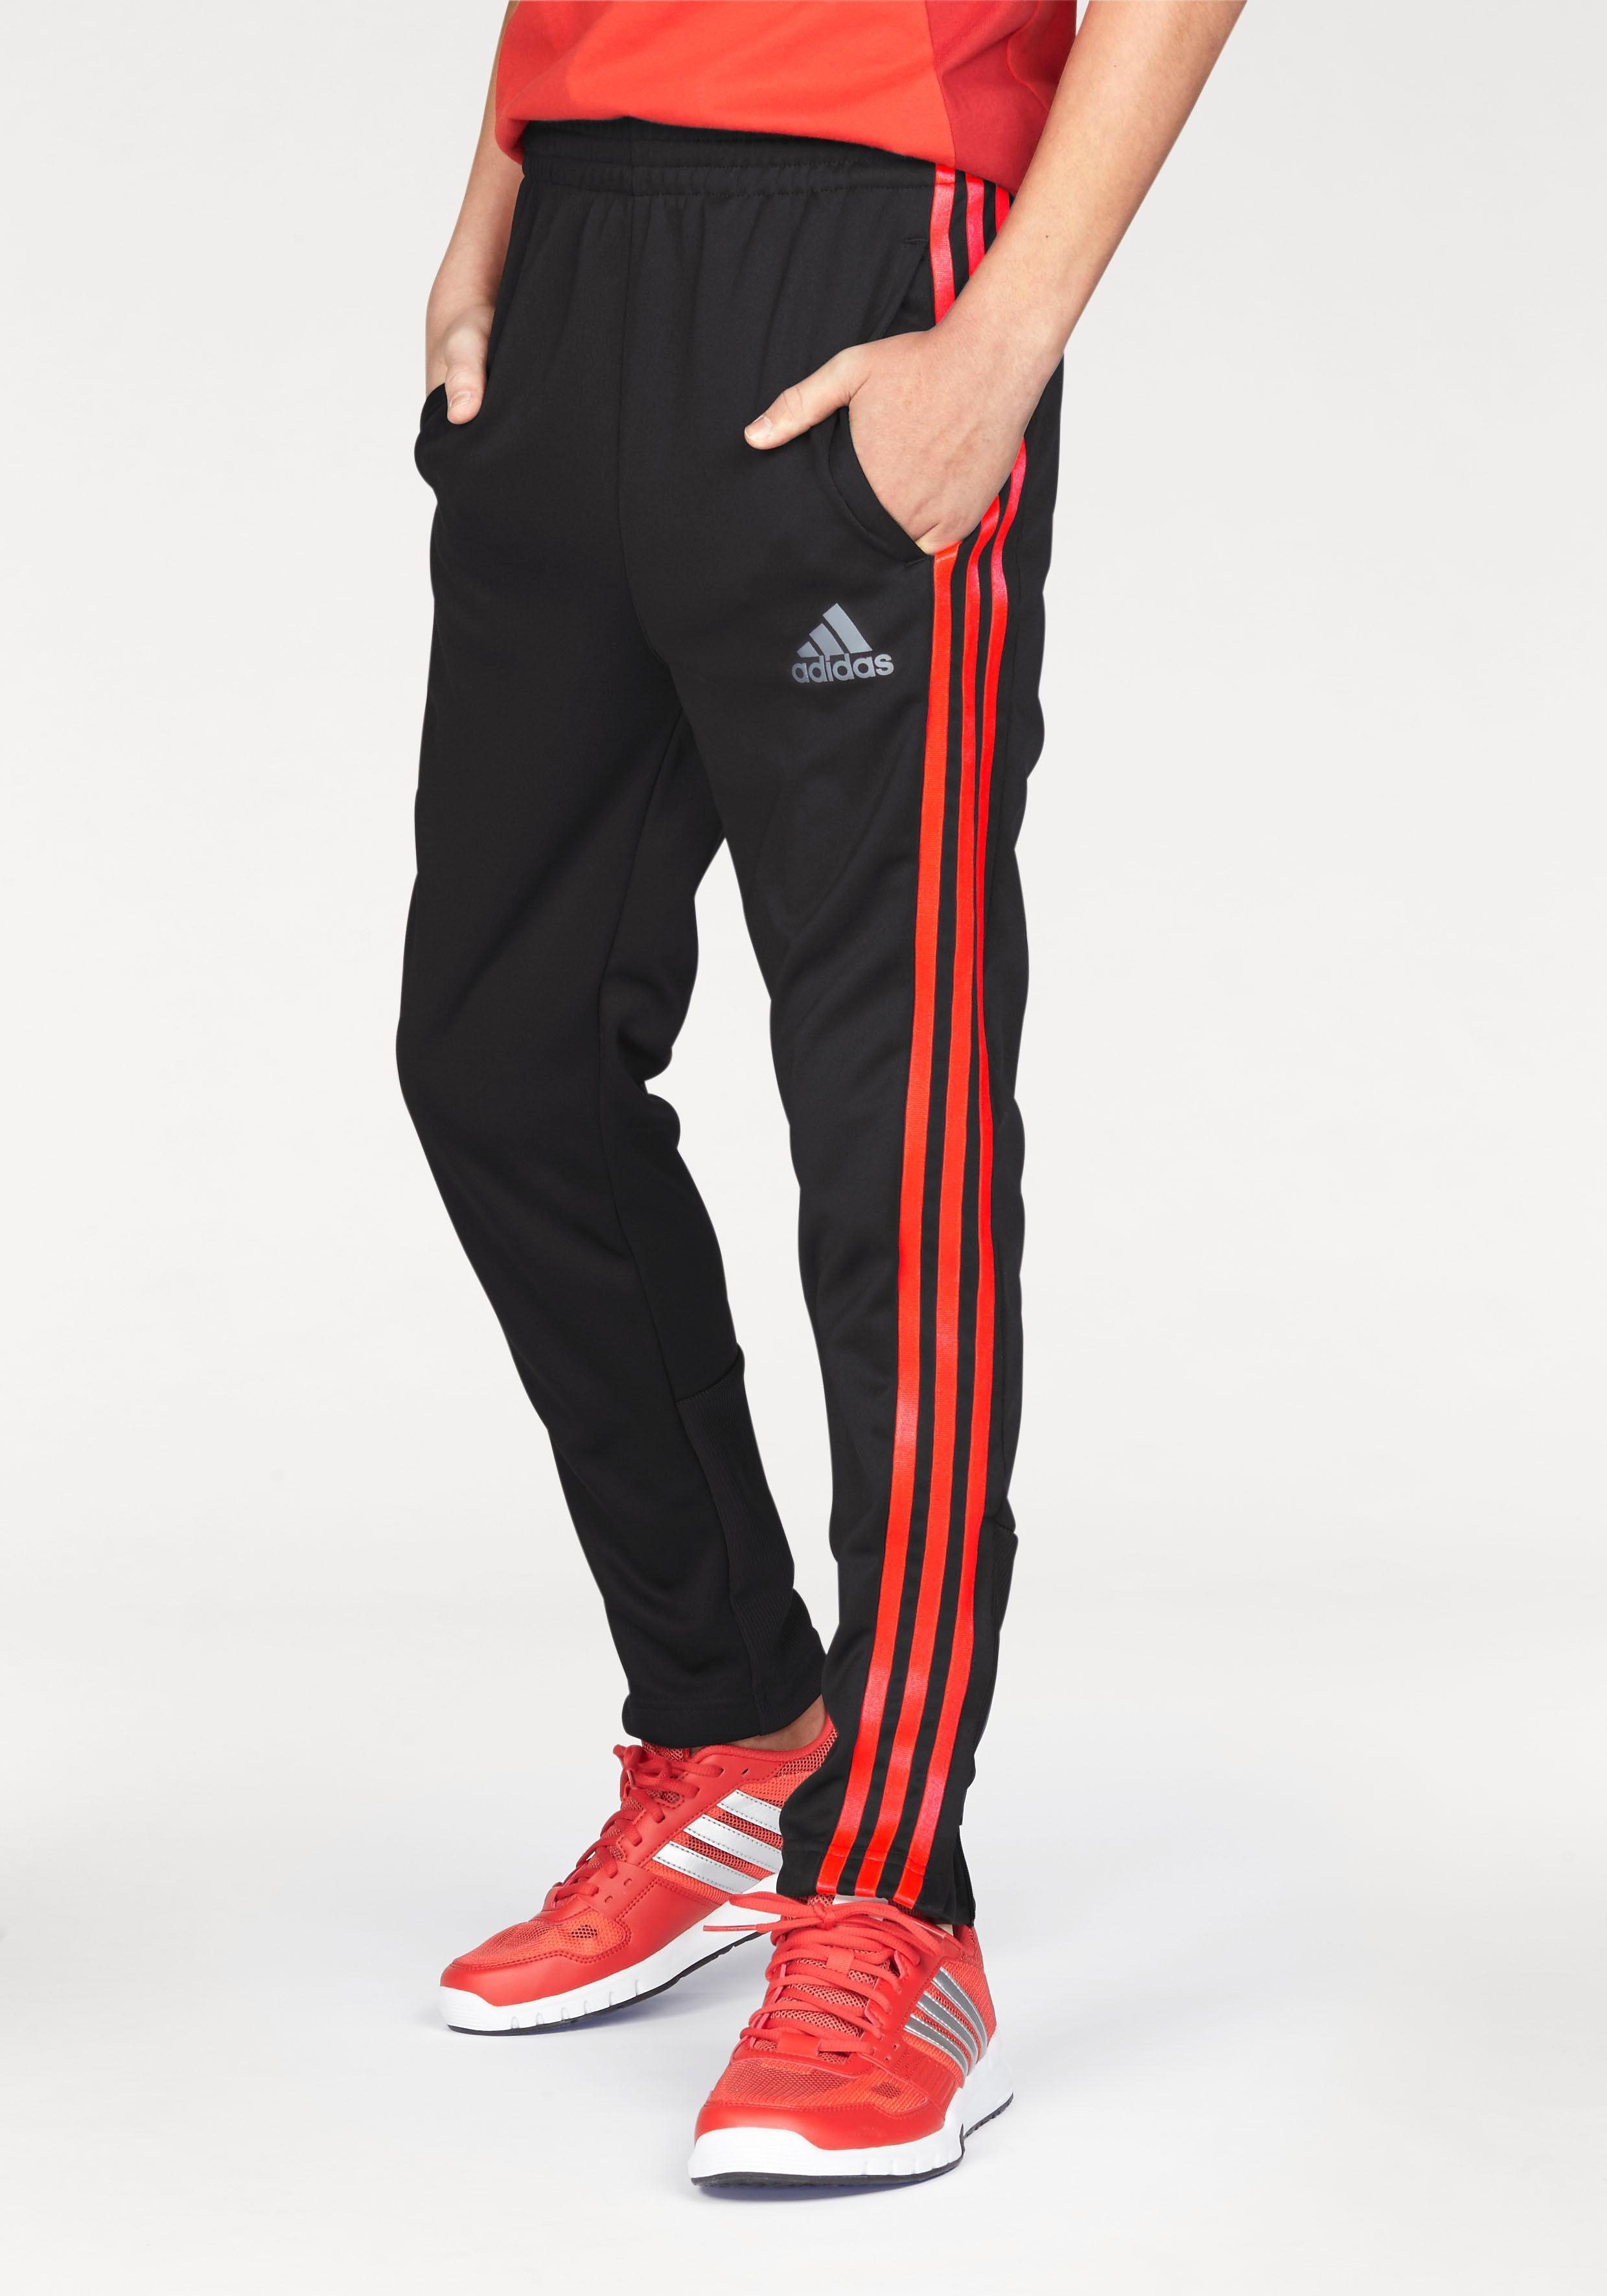 Mykonos Guide - Top 12 Adidas Trainingshose Rot